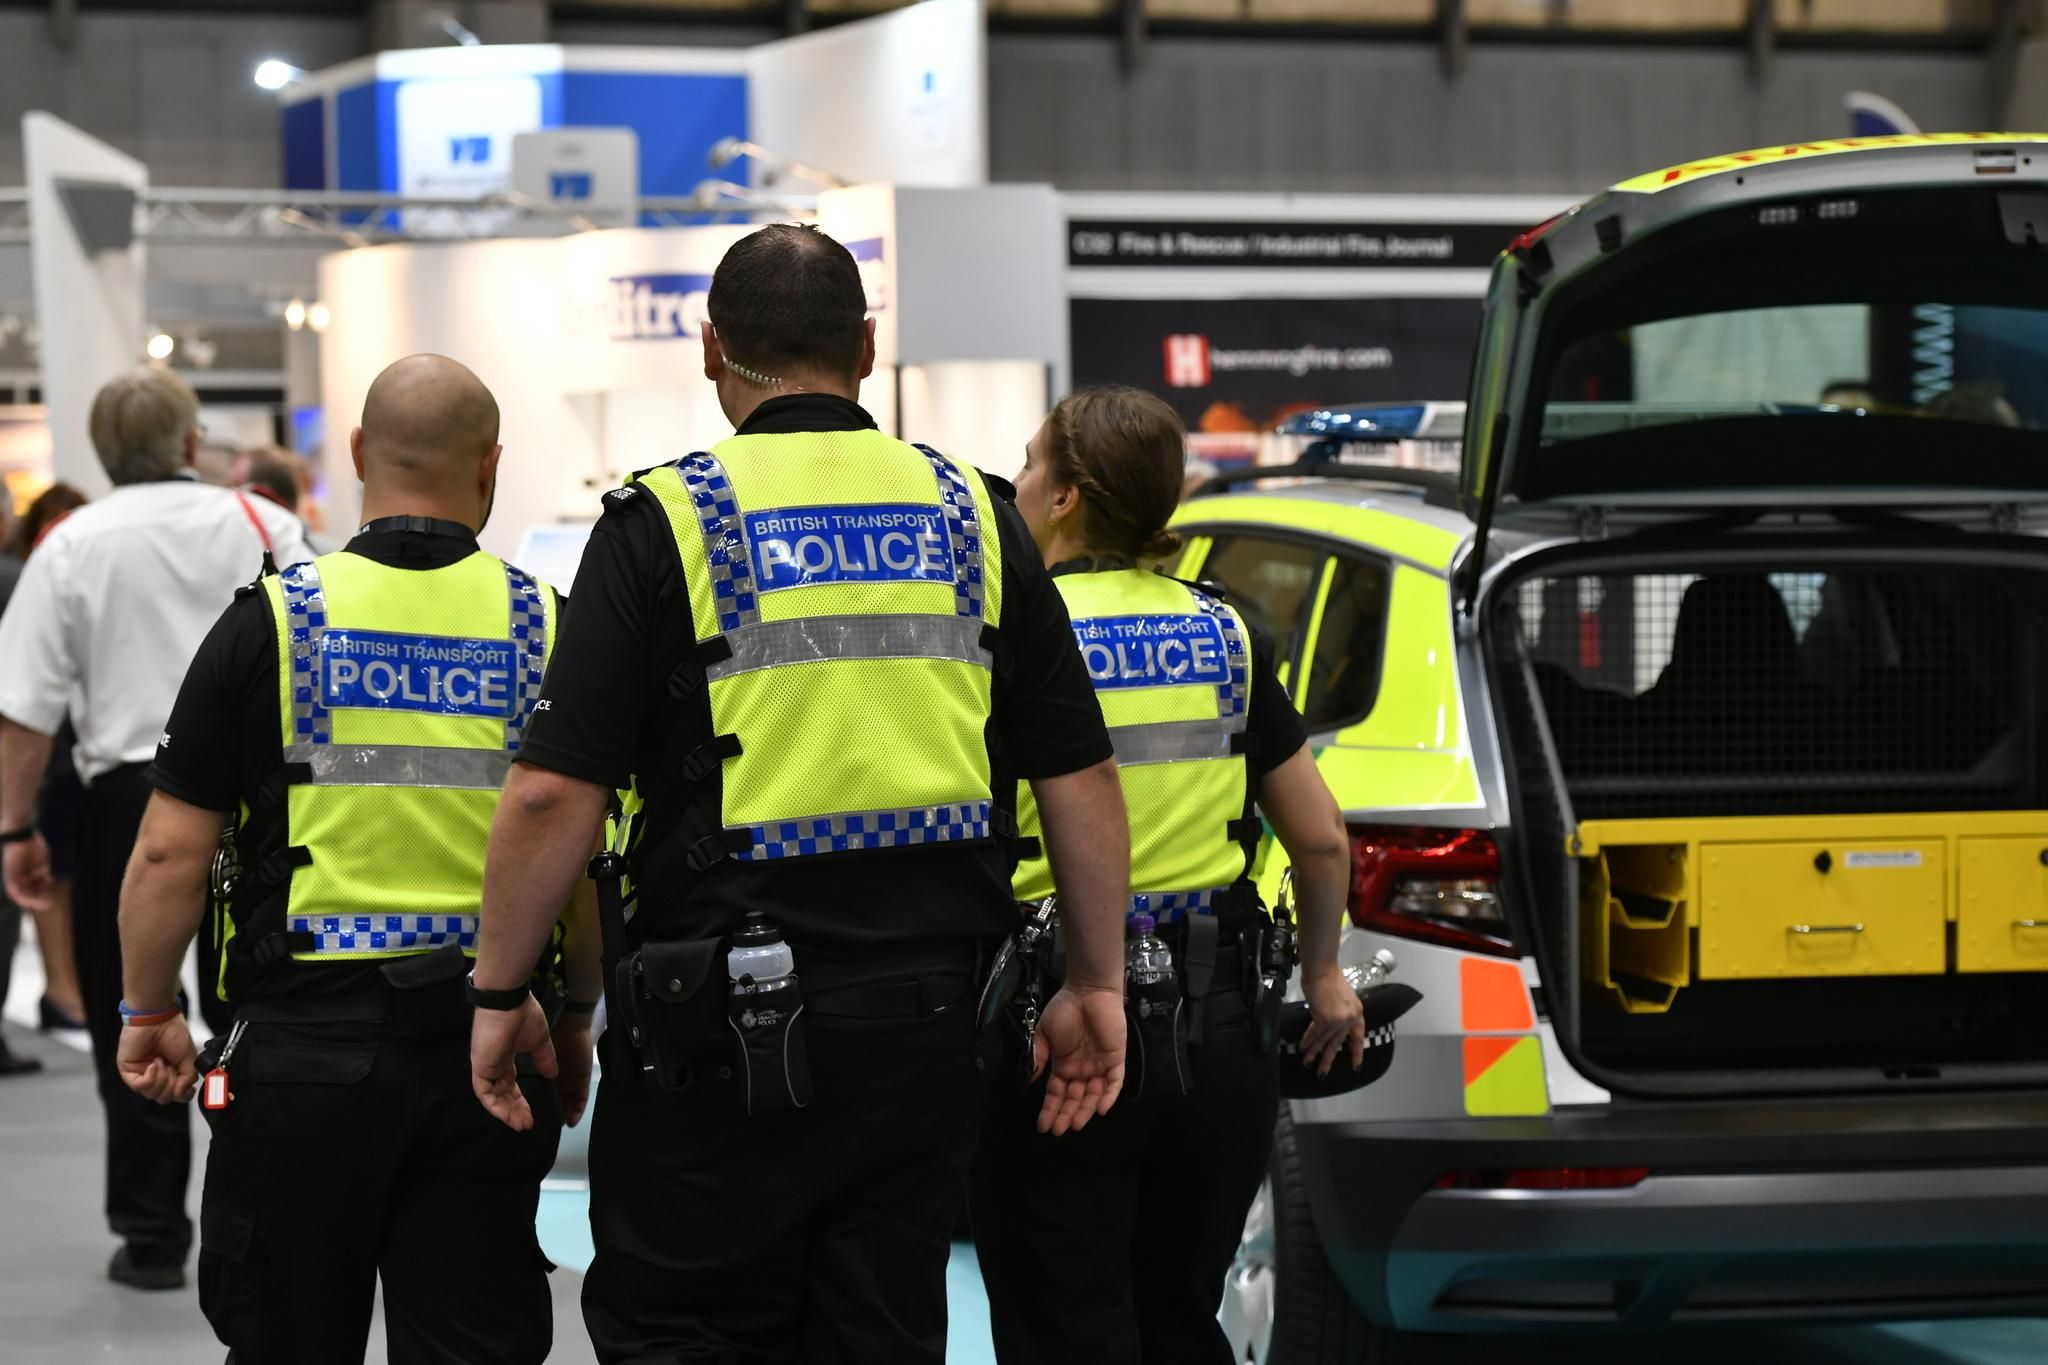 NEW FOR 2021: LAUNCH OF FUTURE POLICING ZONE